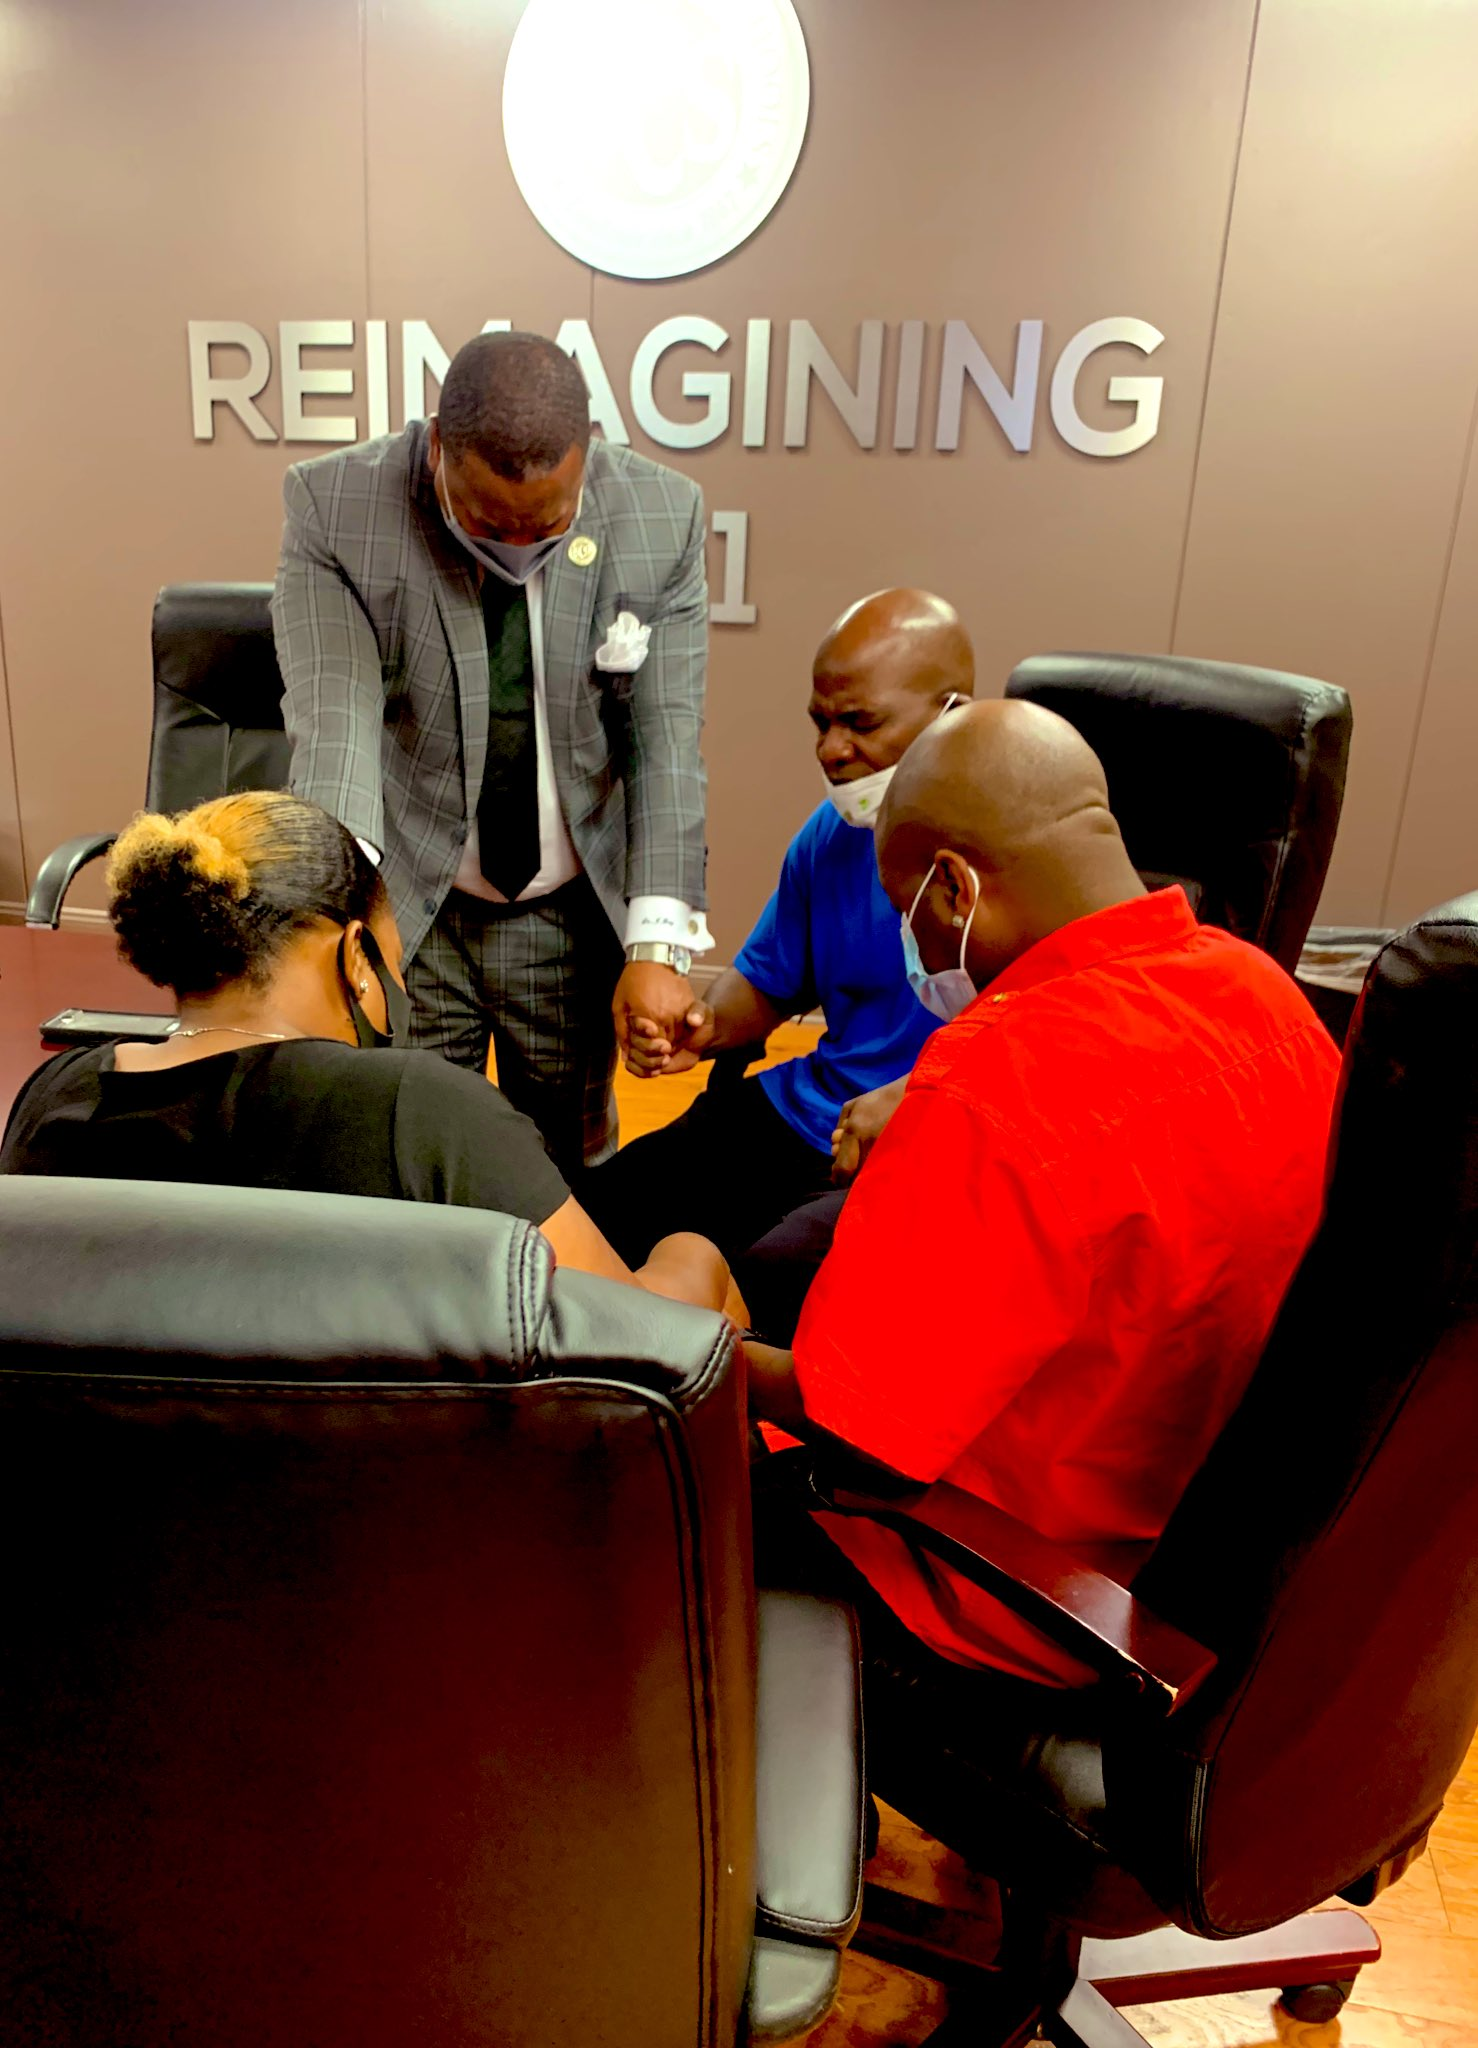 Four adults circled together in a conference room hold hands and pray.